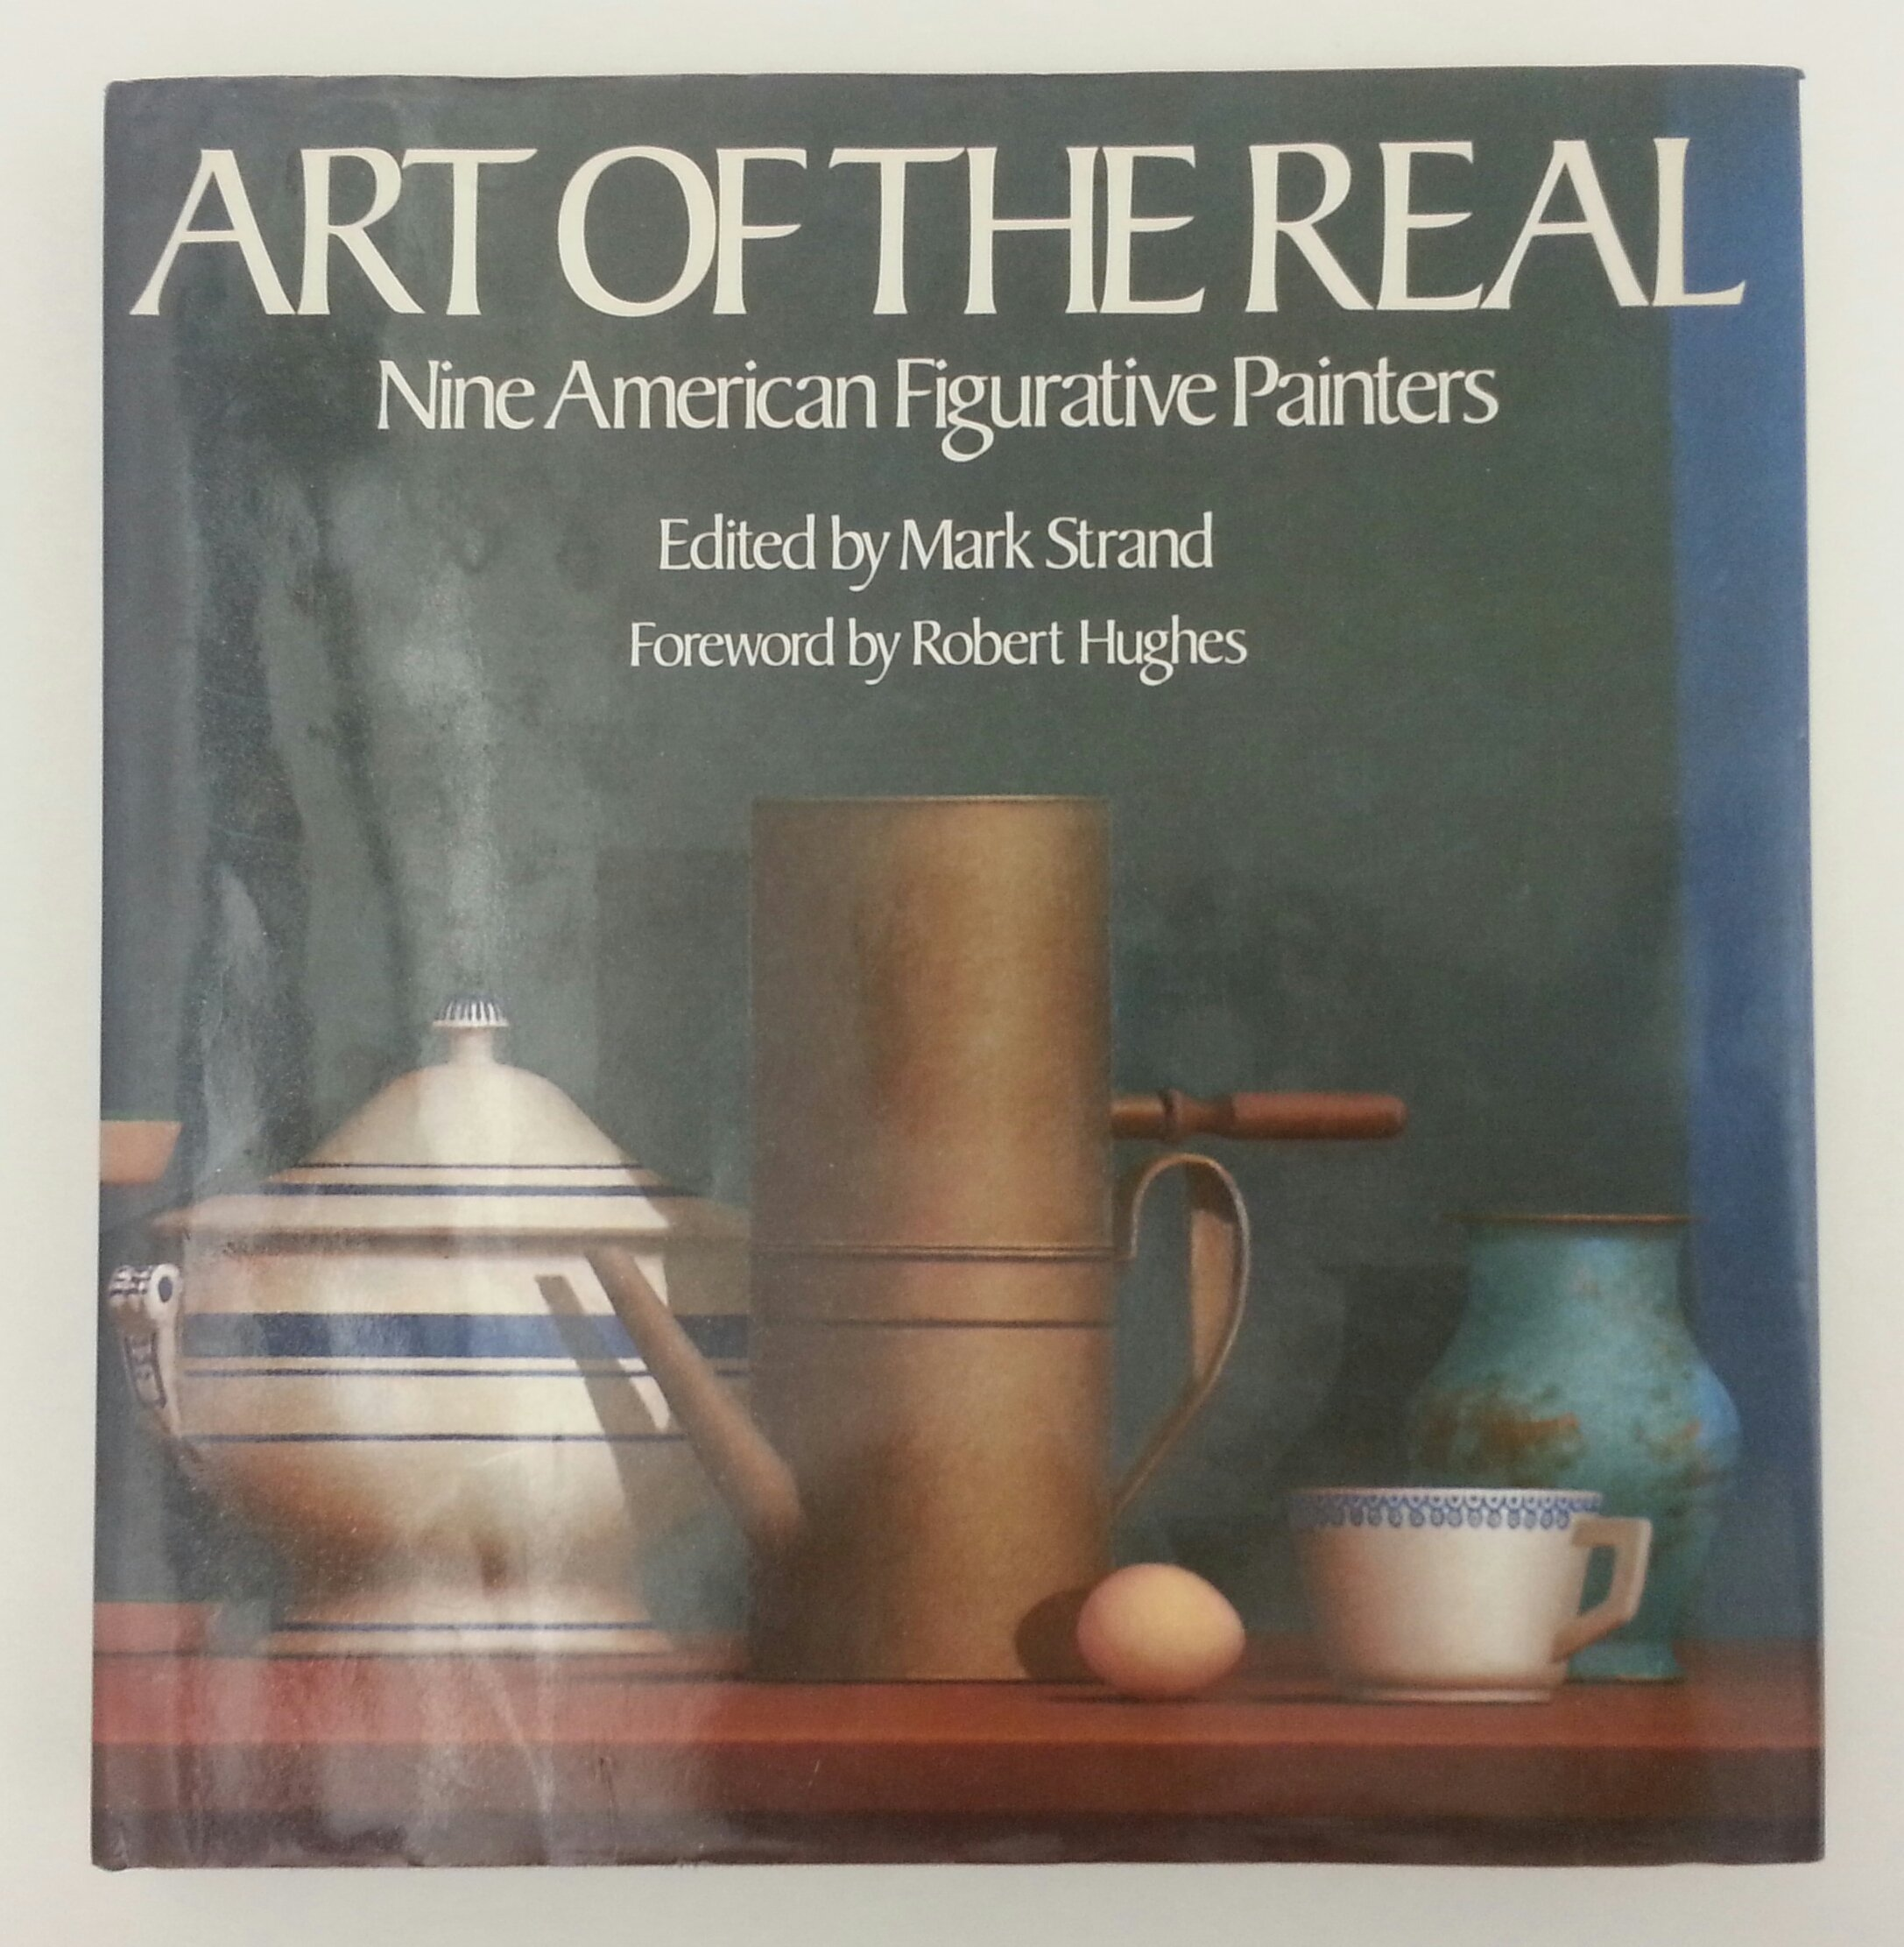 art of the real 9 cont figurat